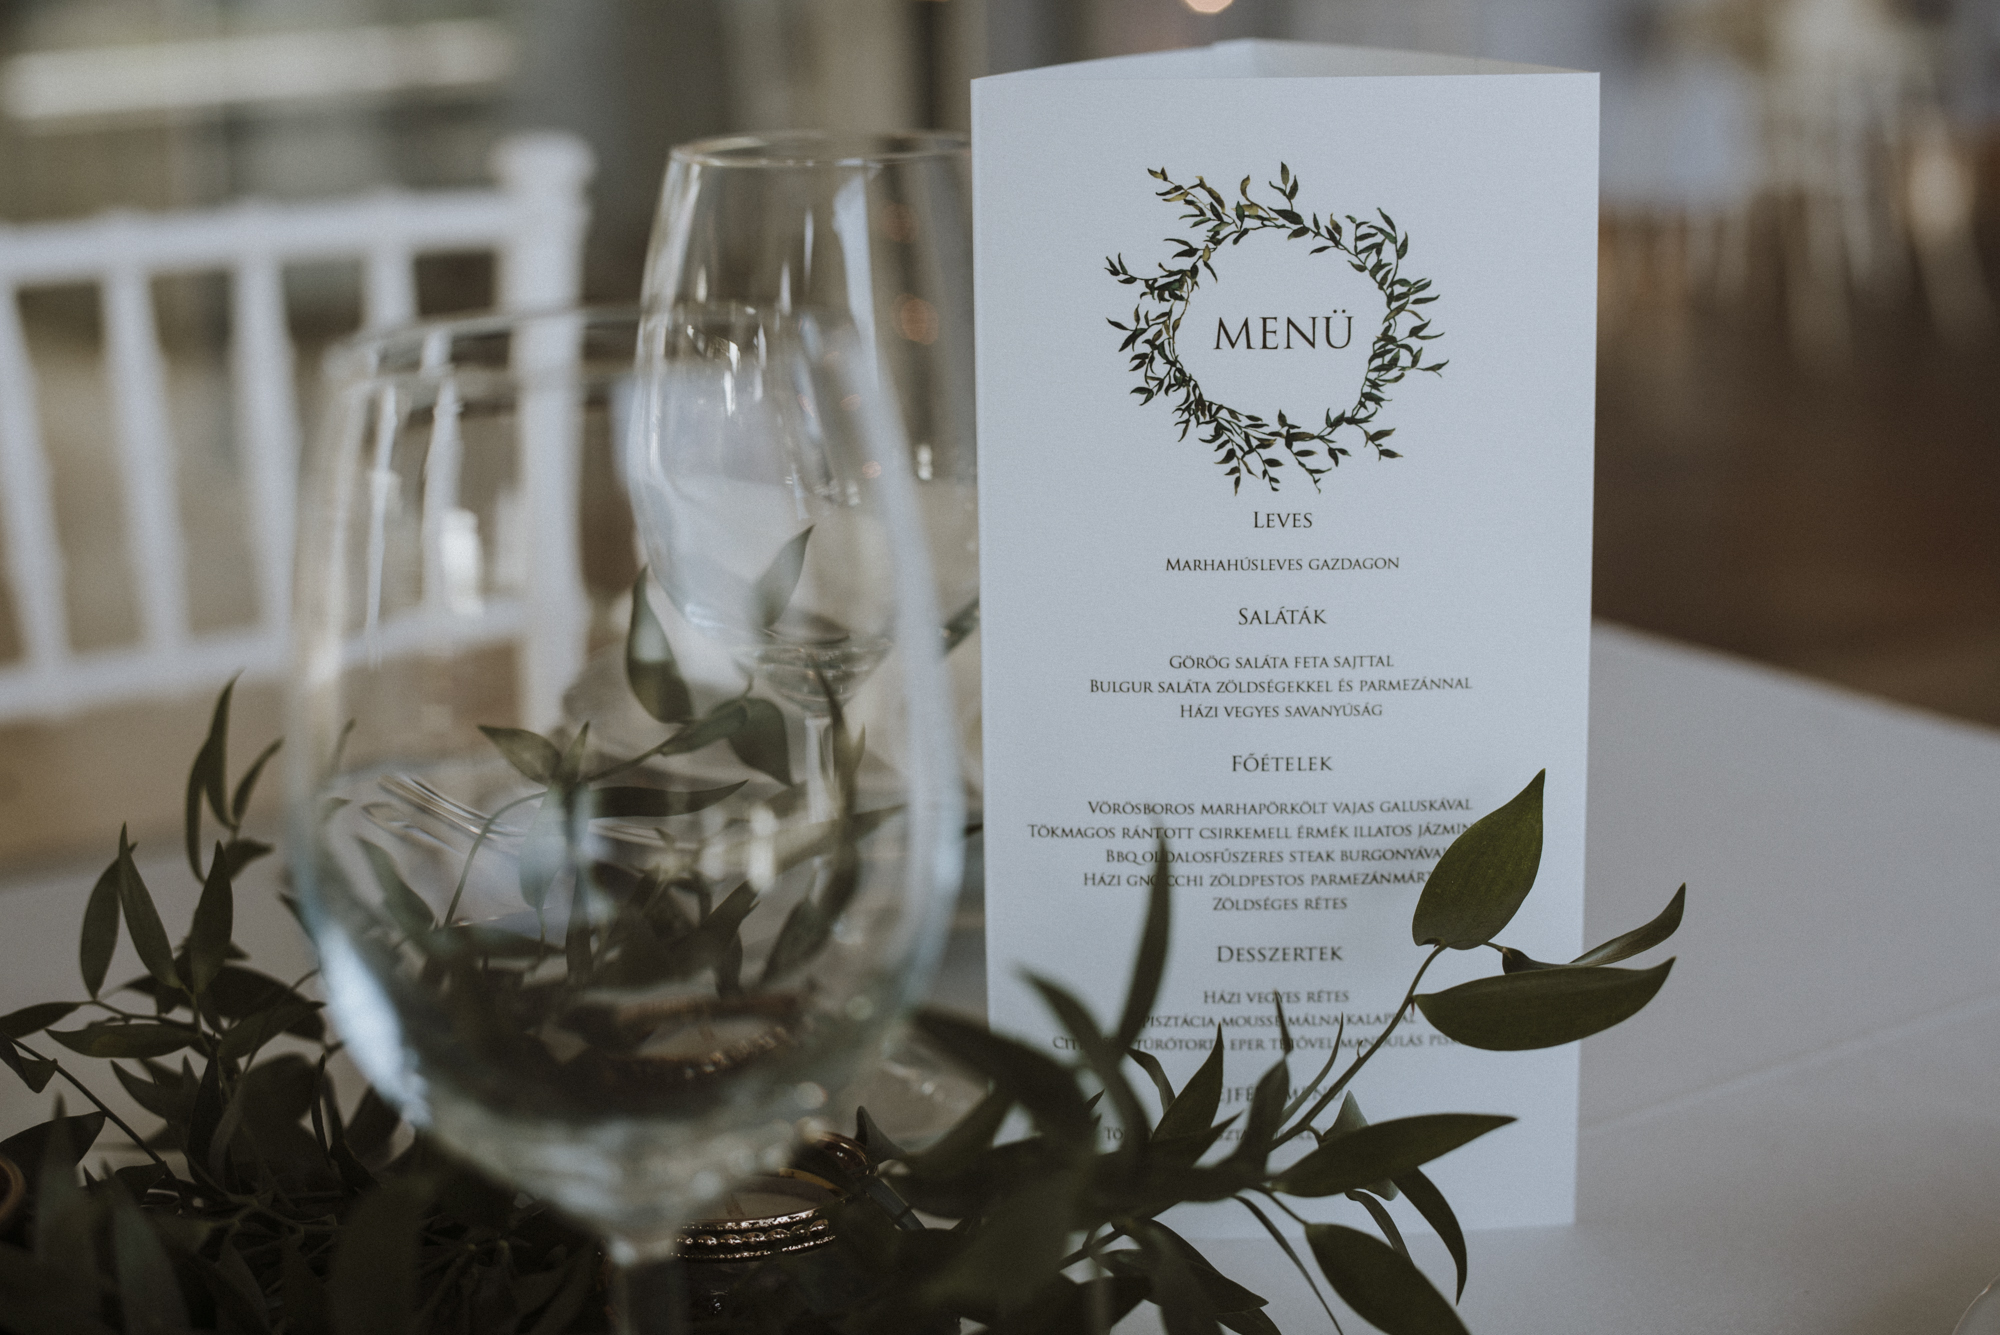 Table arrangement with menu card